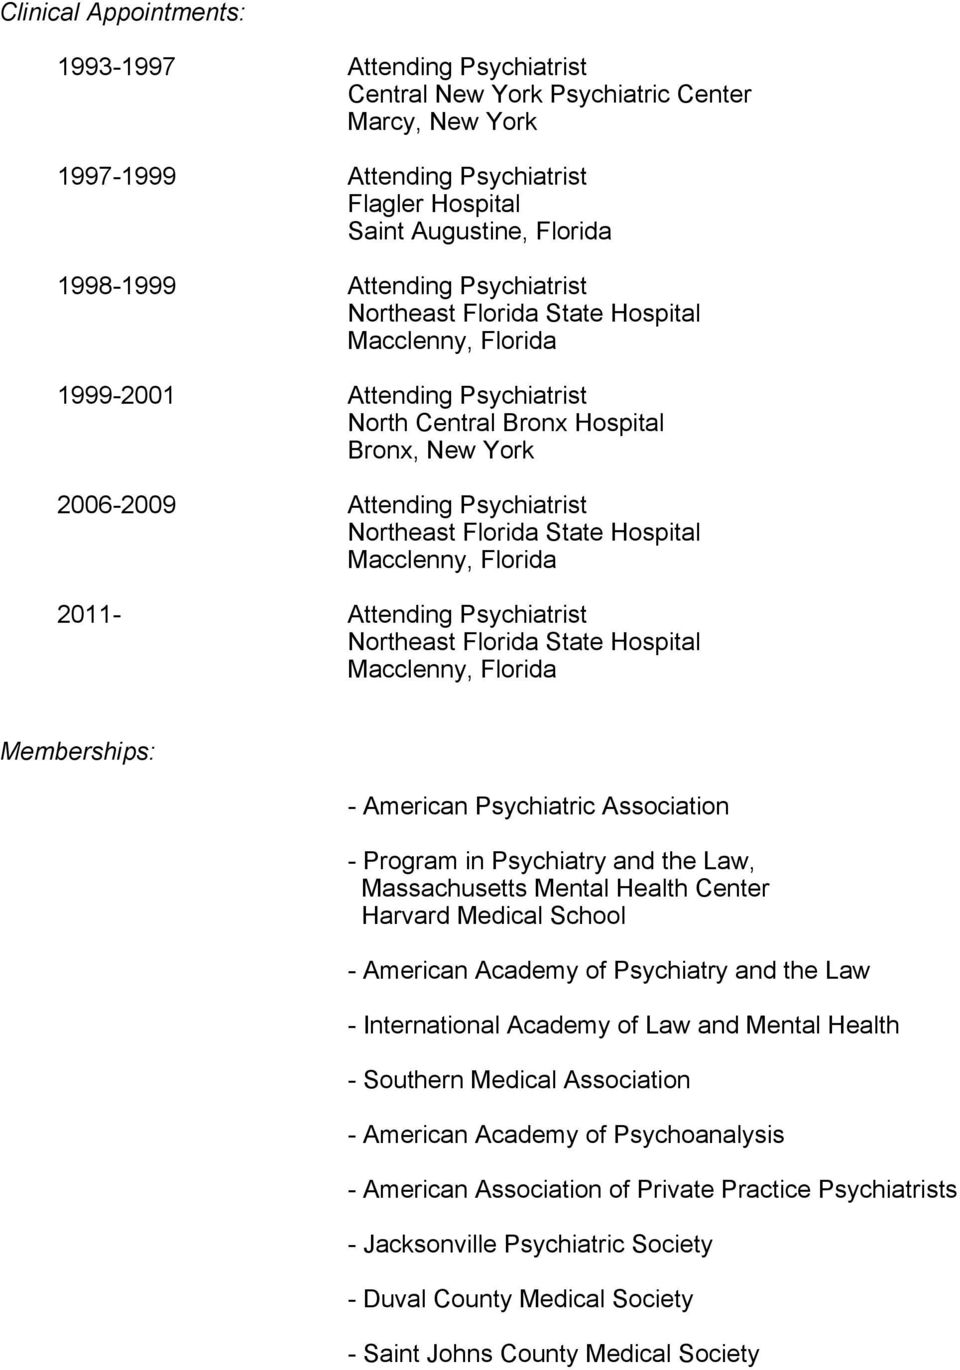 Program in Psychiatry and the Law, Massachusetts Mental Health Center - American Academy of Psychiatry and the Law - International Academy of Law and Mental Health - Southern Medical